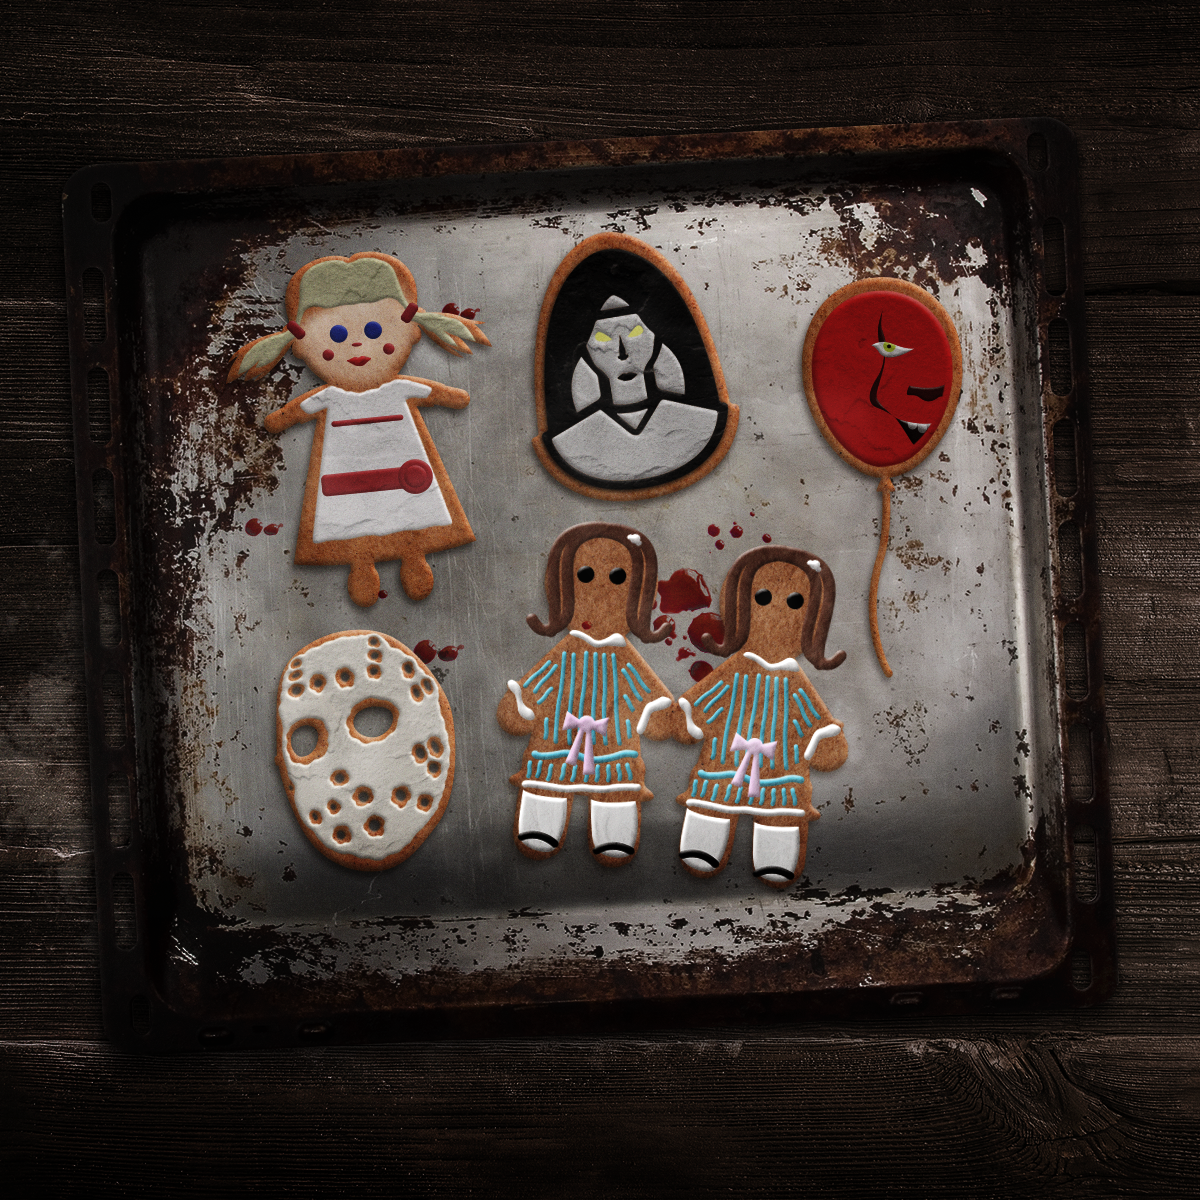 Annabelle, The Nun, Pennywise's Red Ballon, Jason Voorhees' Hockey Mask, and The Grady Twins as cookies.